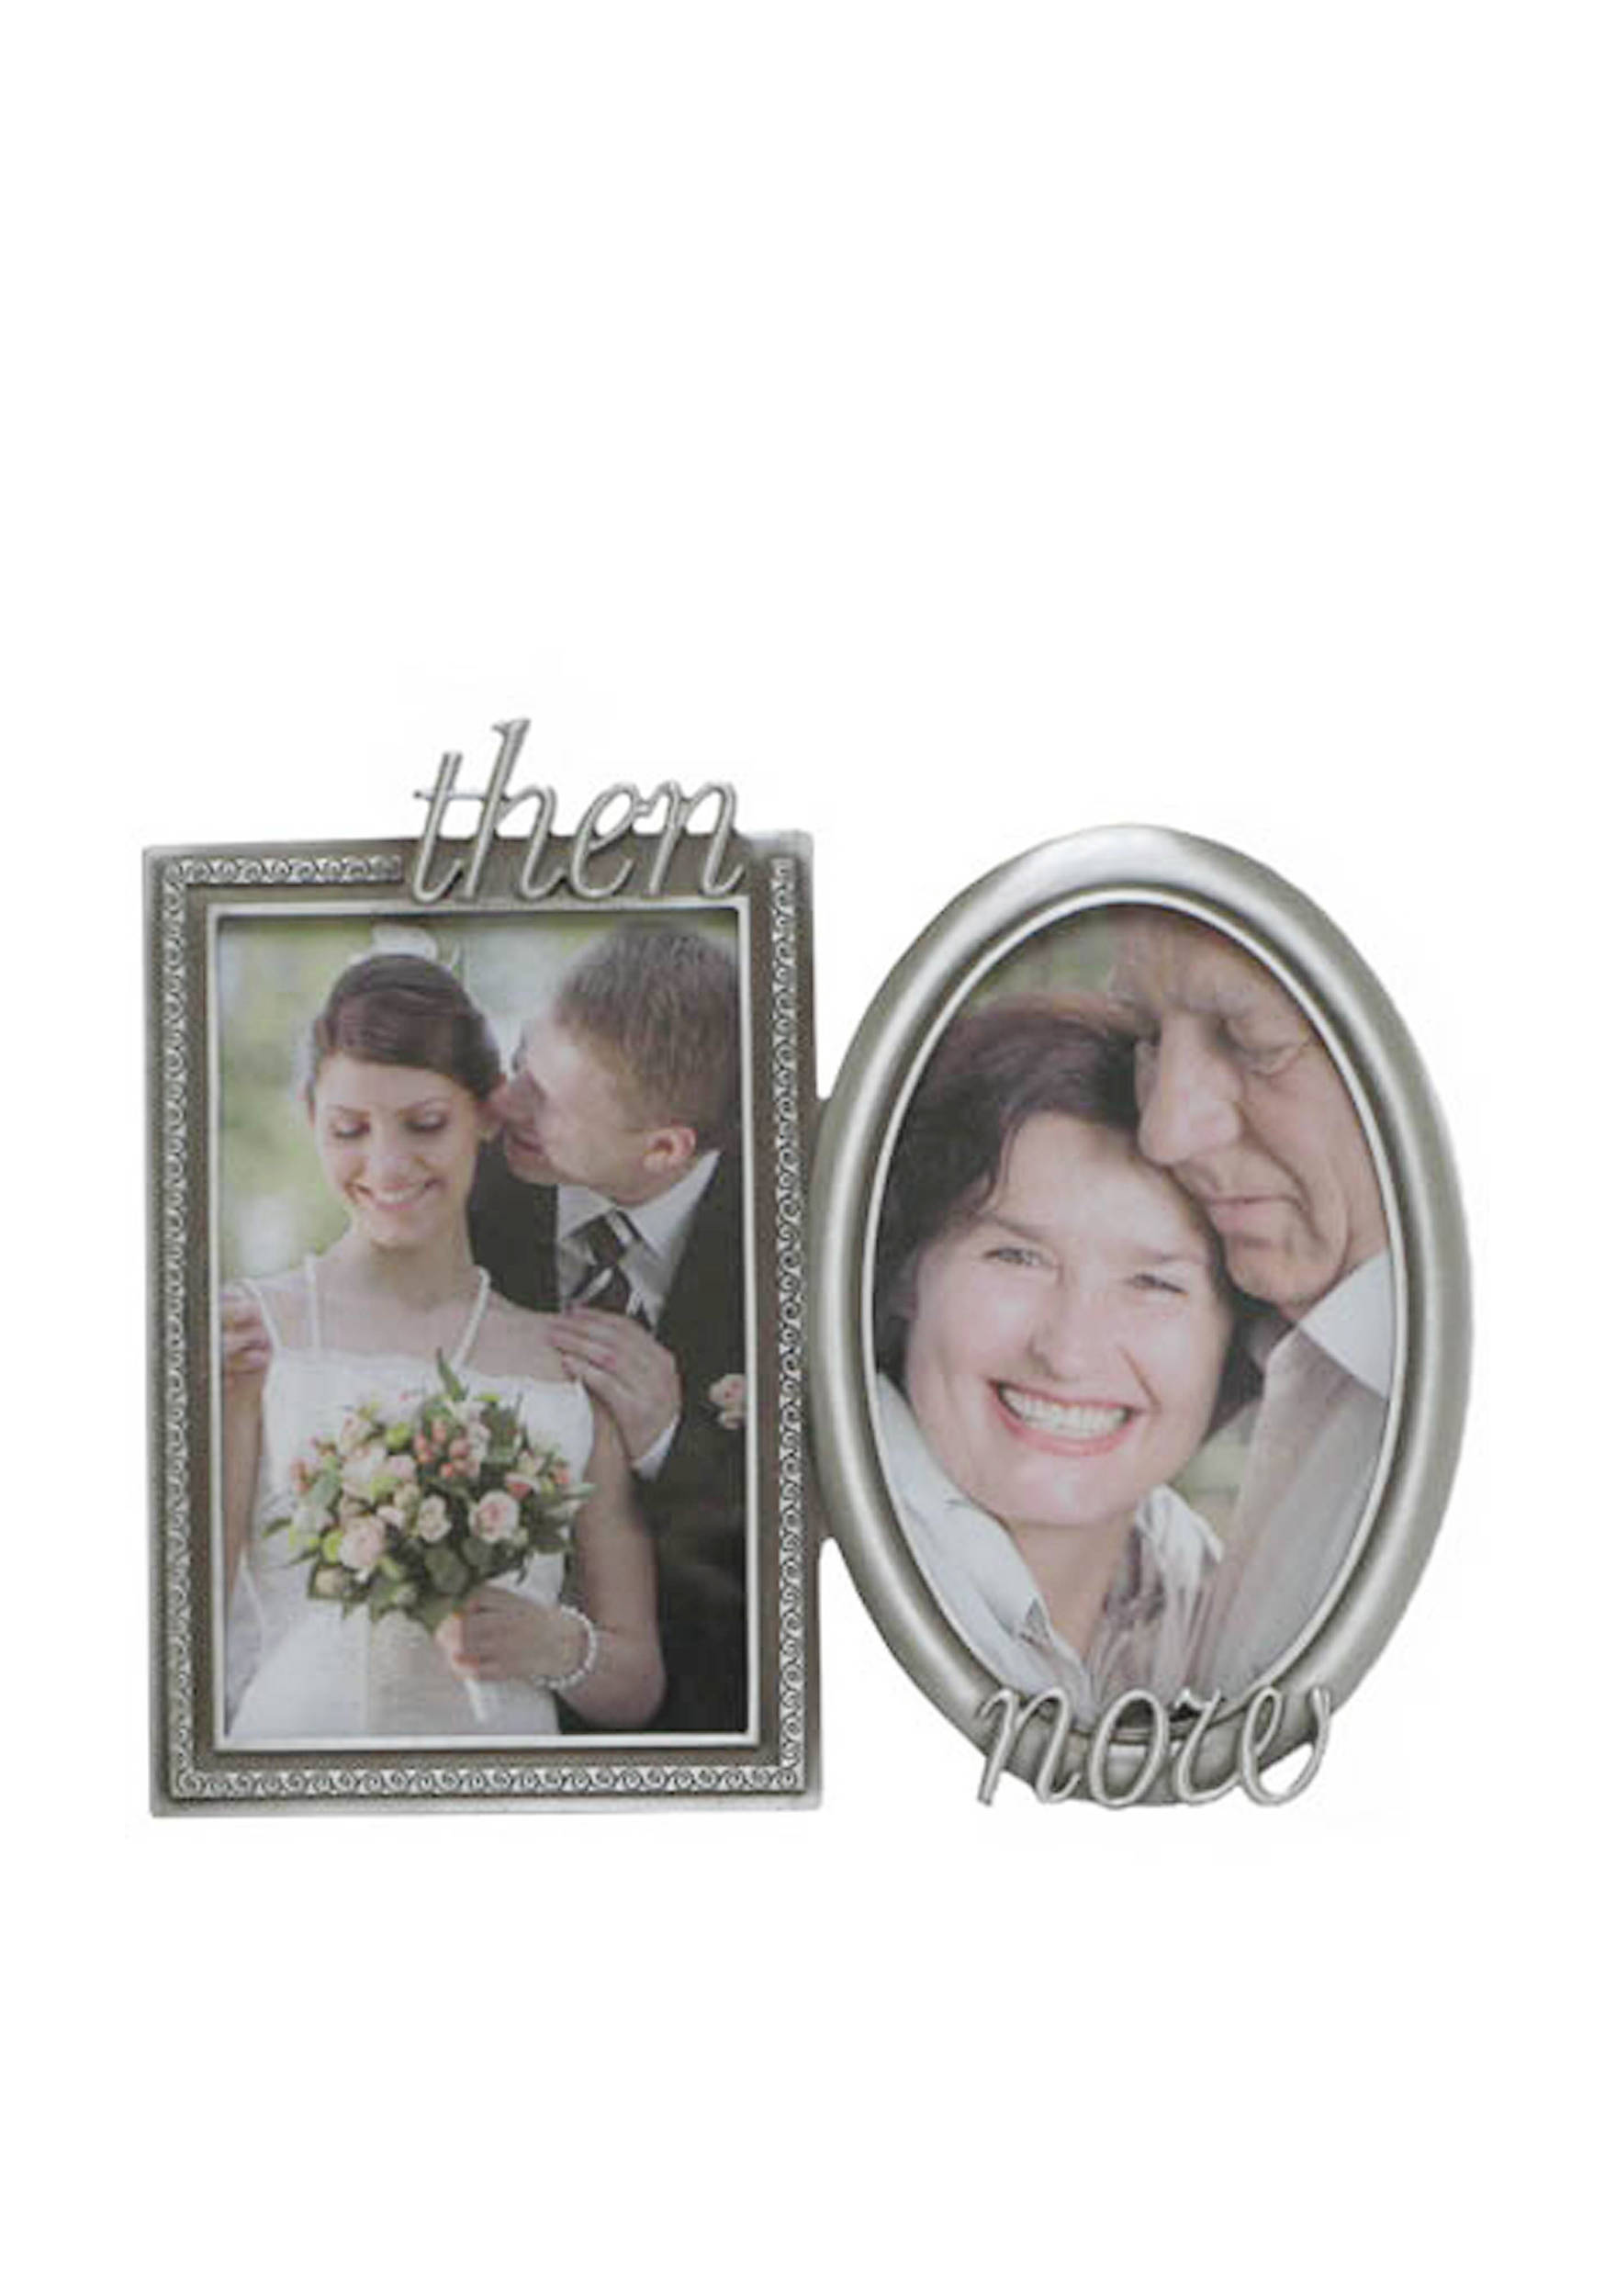 Fetco home dcor then now double frame belk images jeuxipadfo Gallery